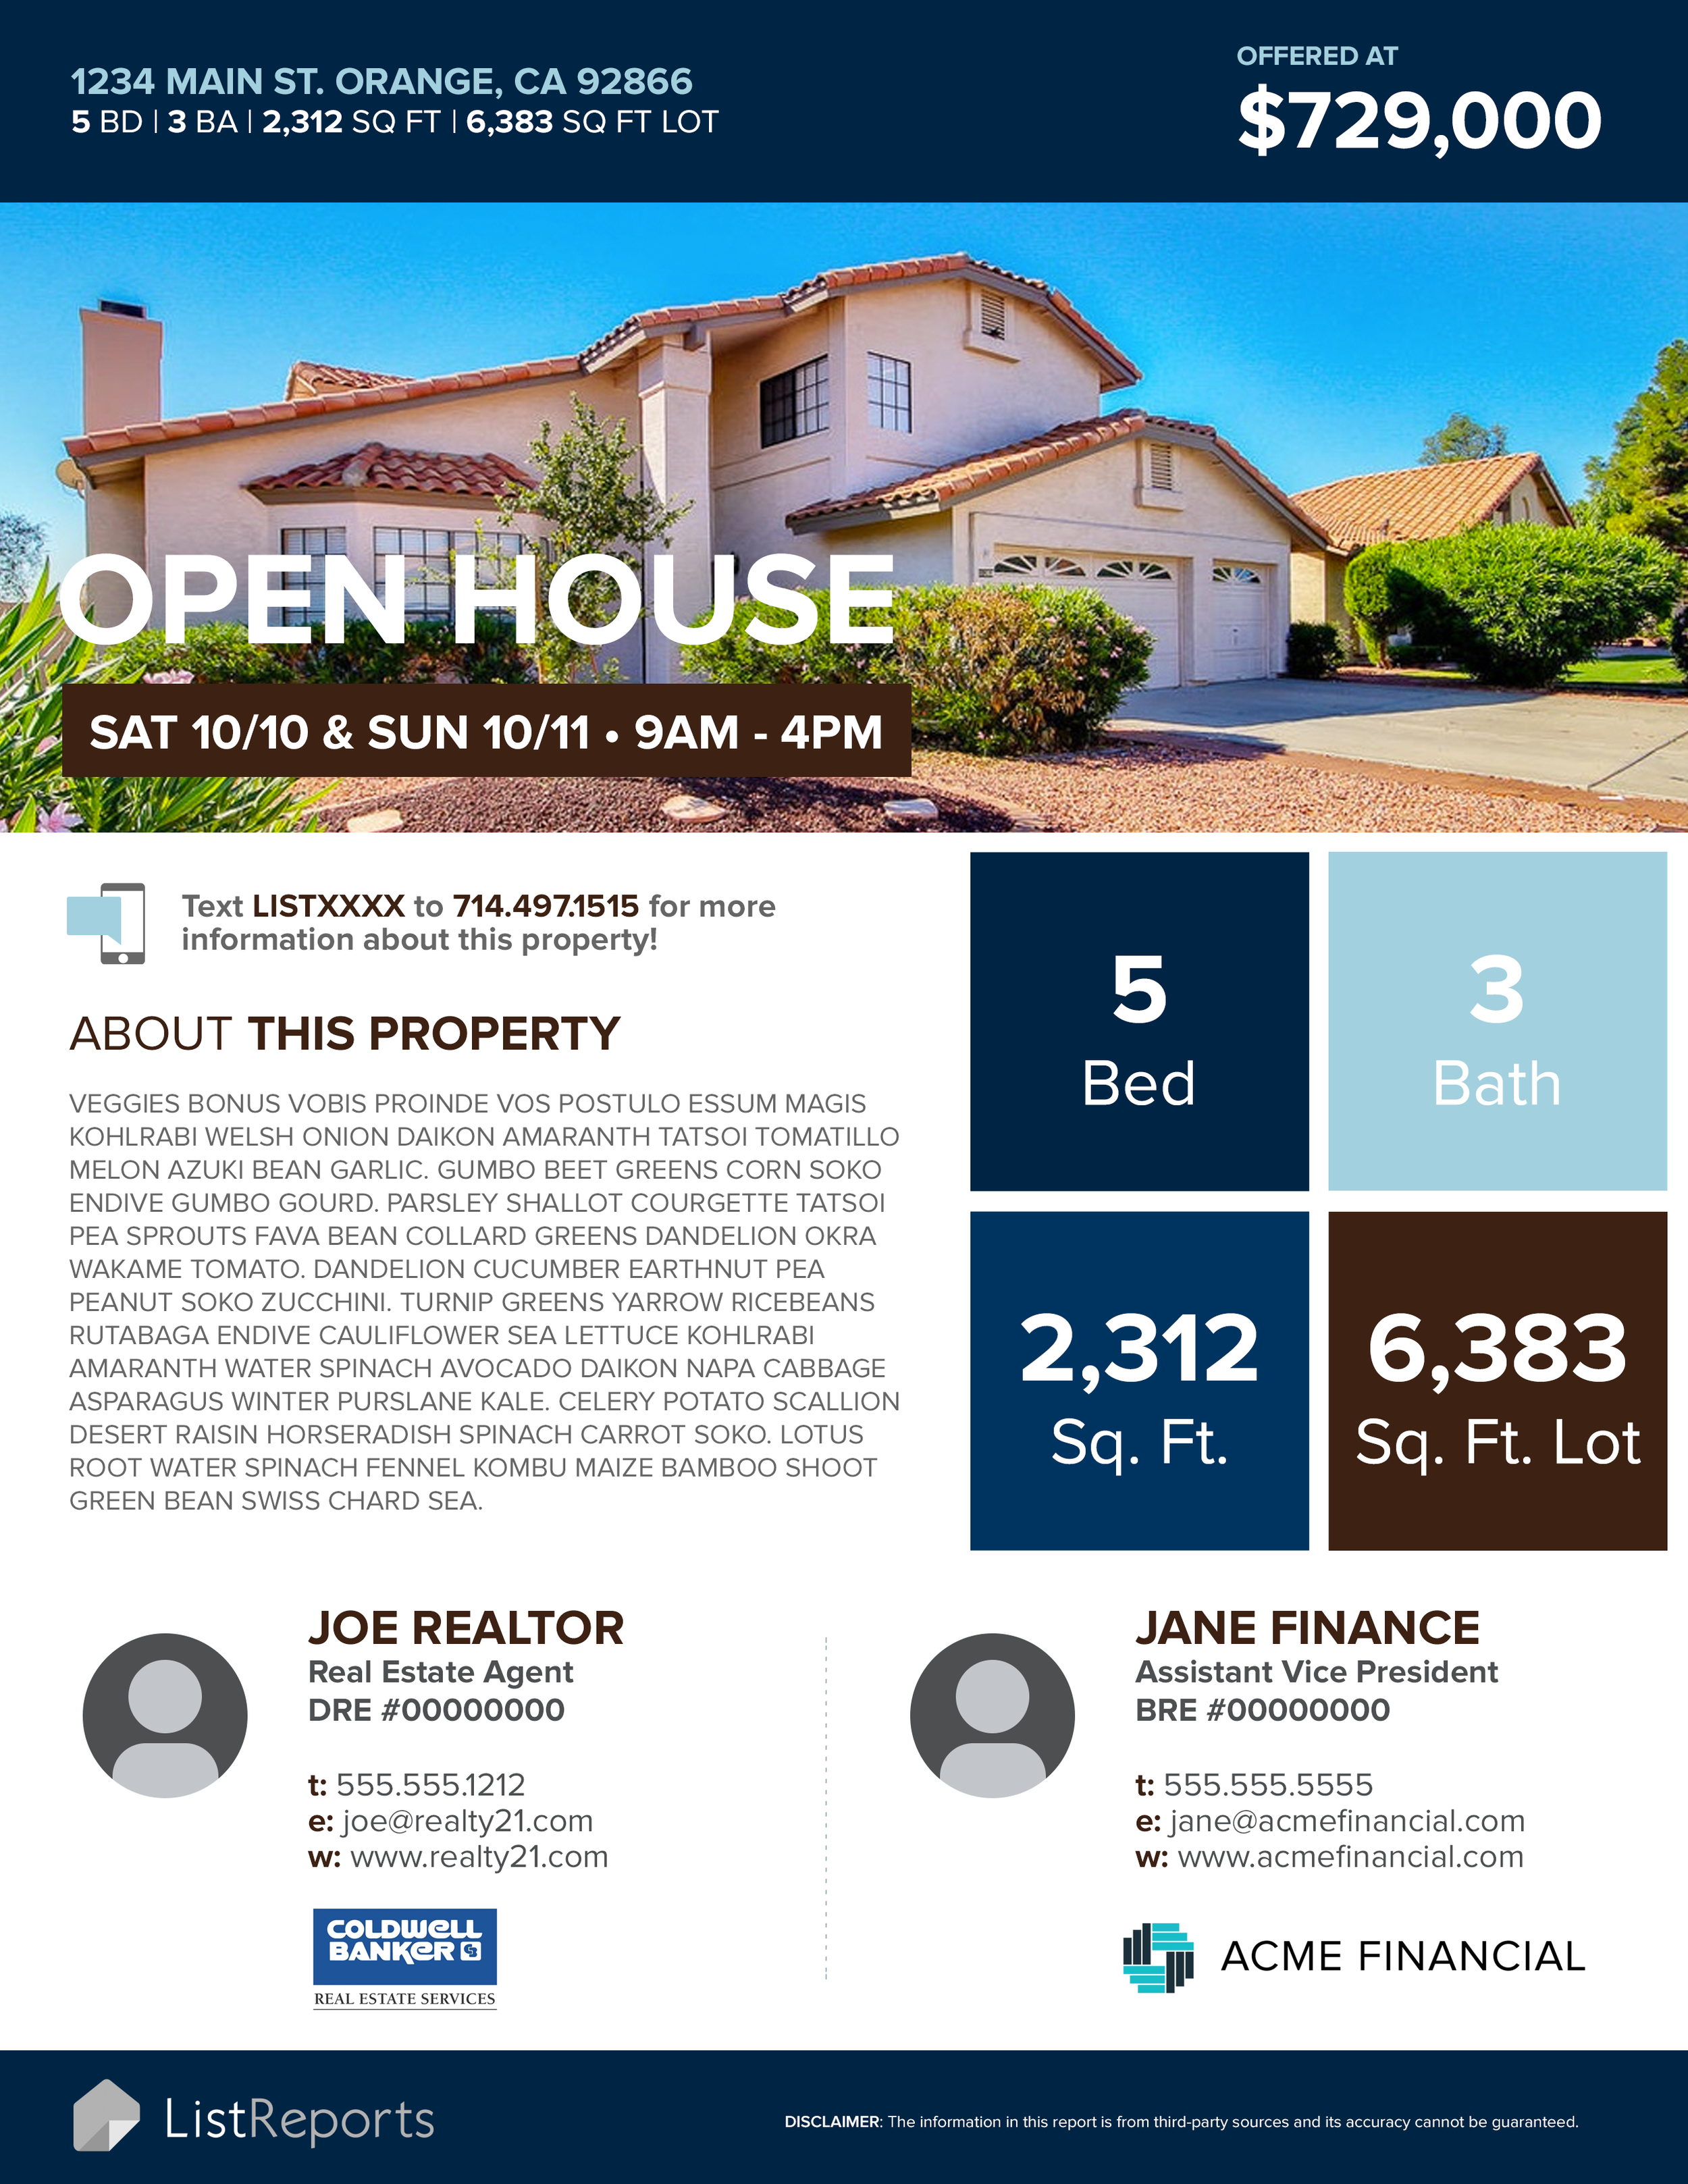 LR_Open_House_ColdwellBanker.png